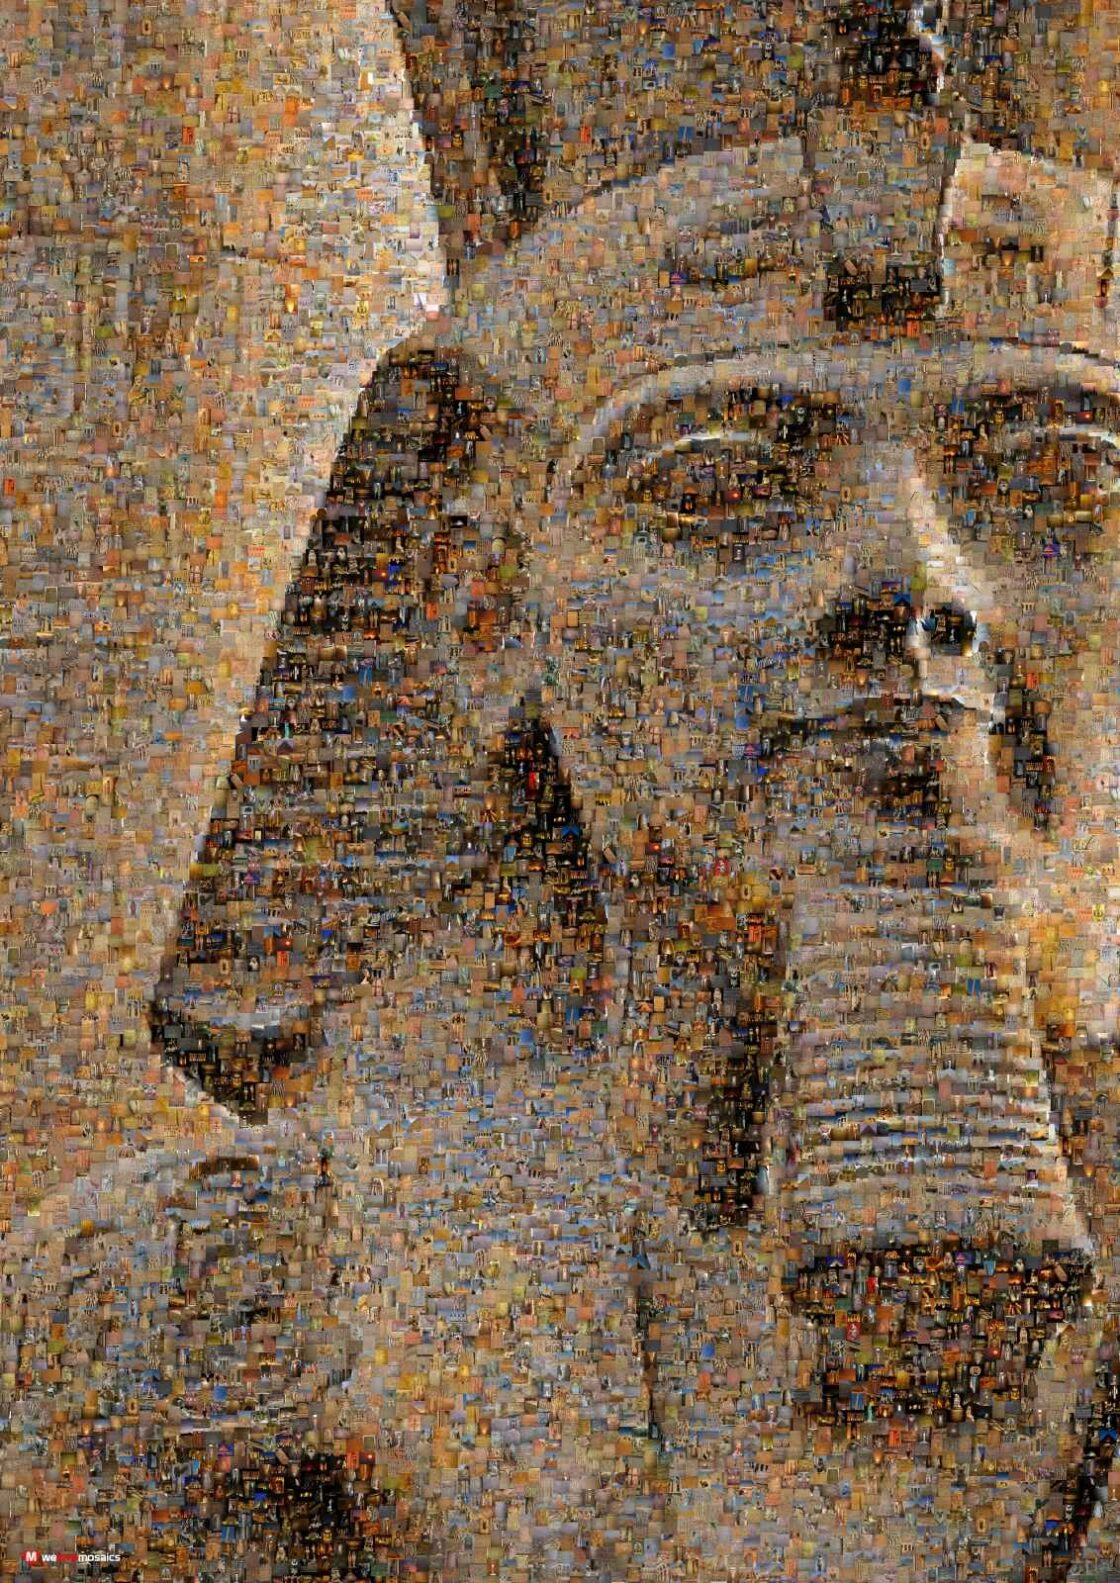 Monuments like this can be found throughout Egypt. A truly historic experience.